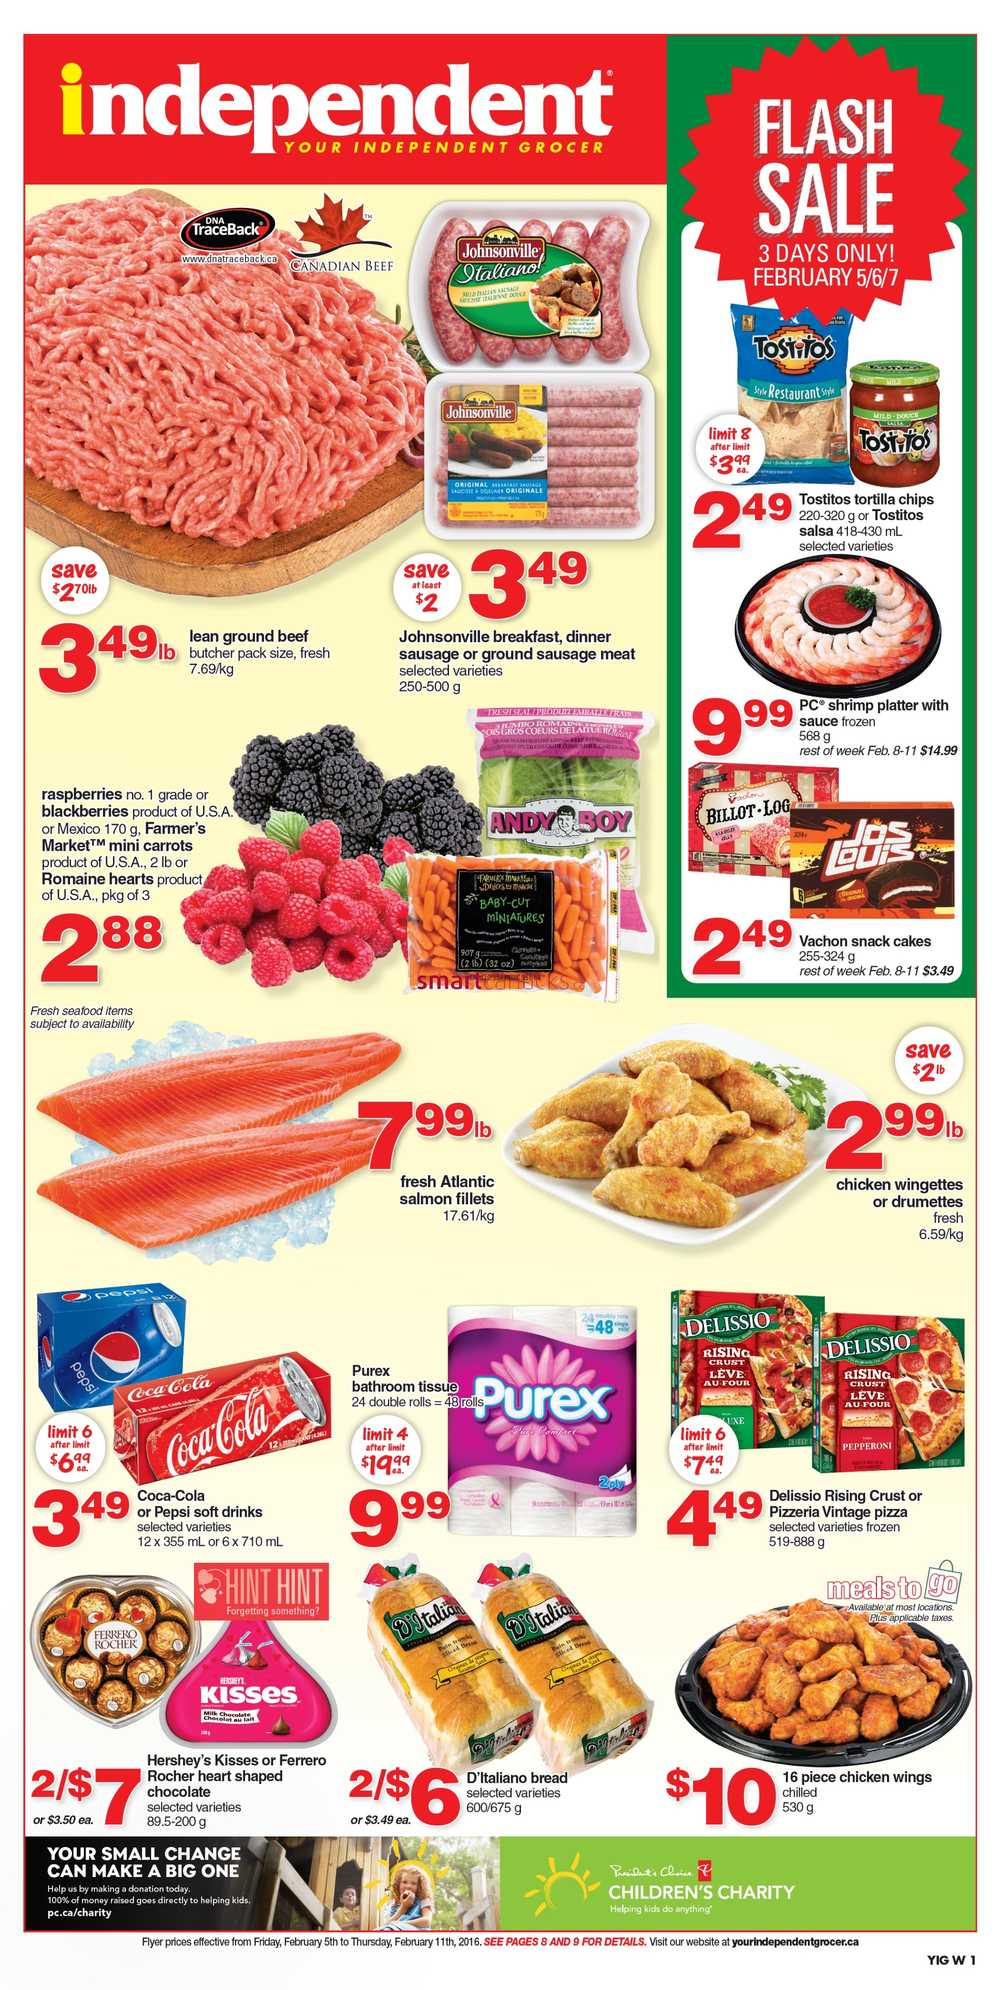 Independent grocer west flyer february 5 to 11 for Achat carrelage pas cher